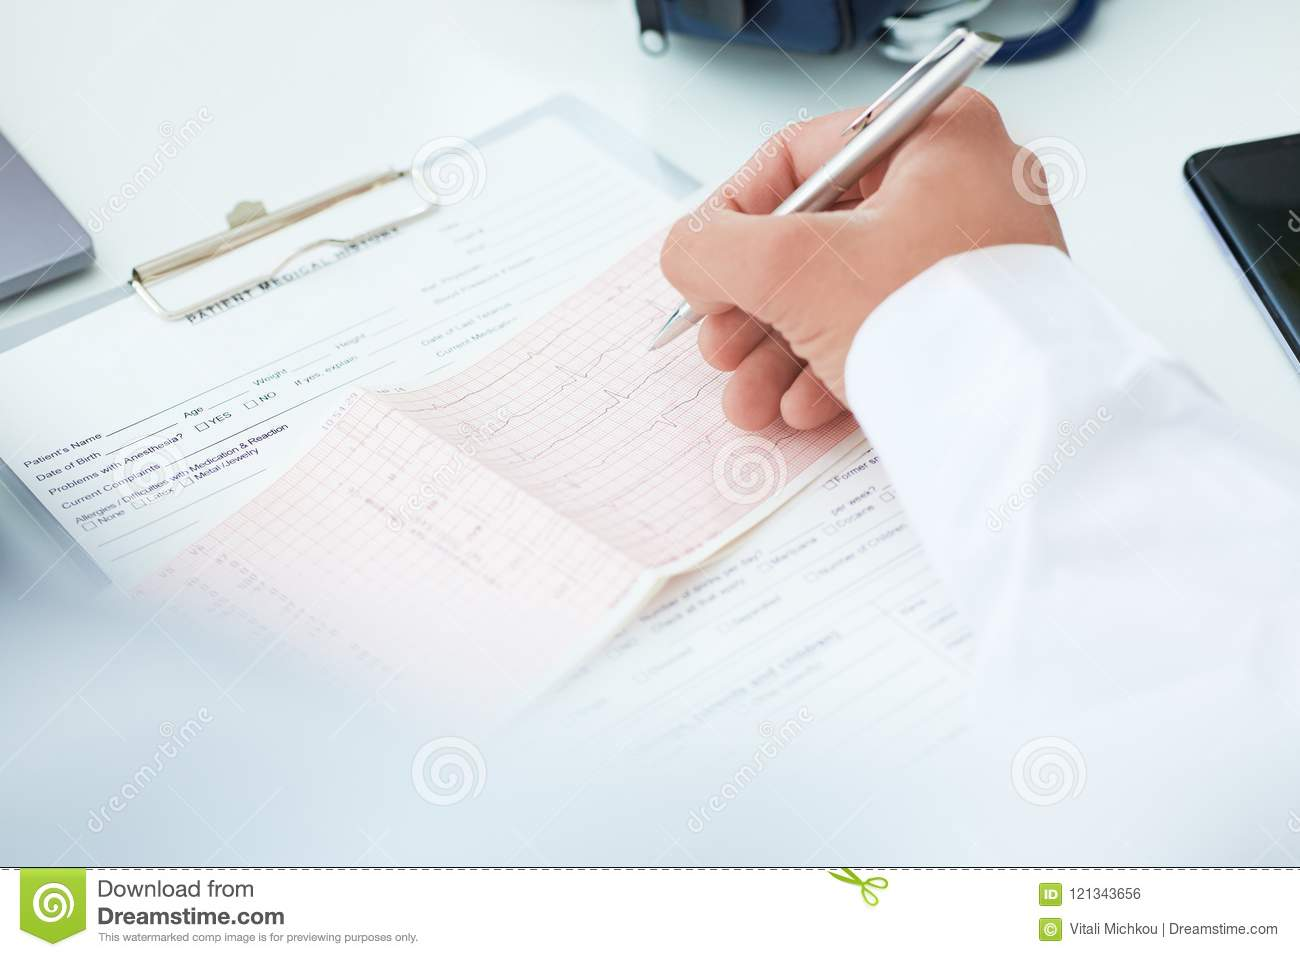 Professional male doctor is explaining the result selectrocardiogram to patients. Medical and healtcare concept.